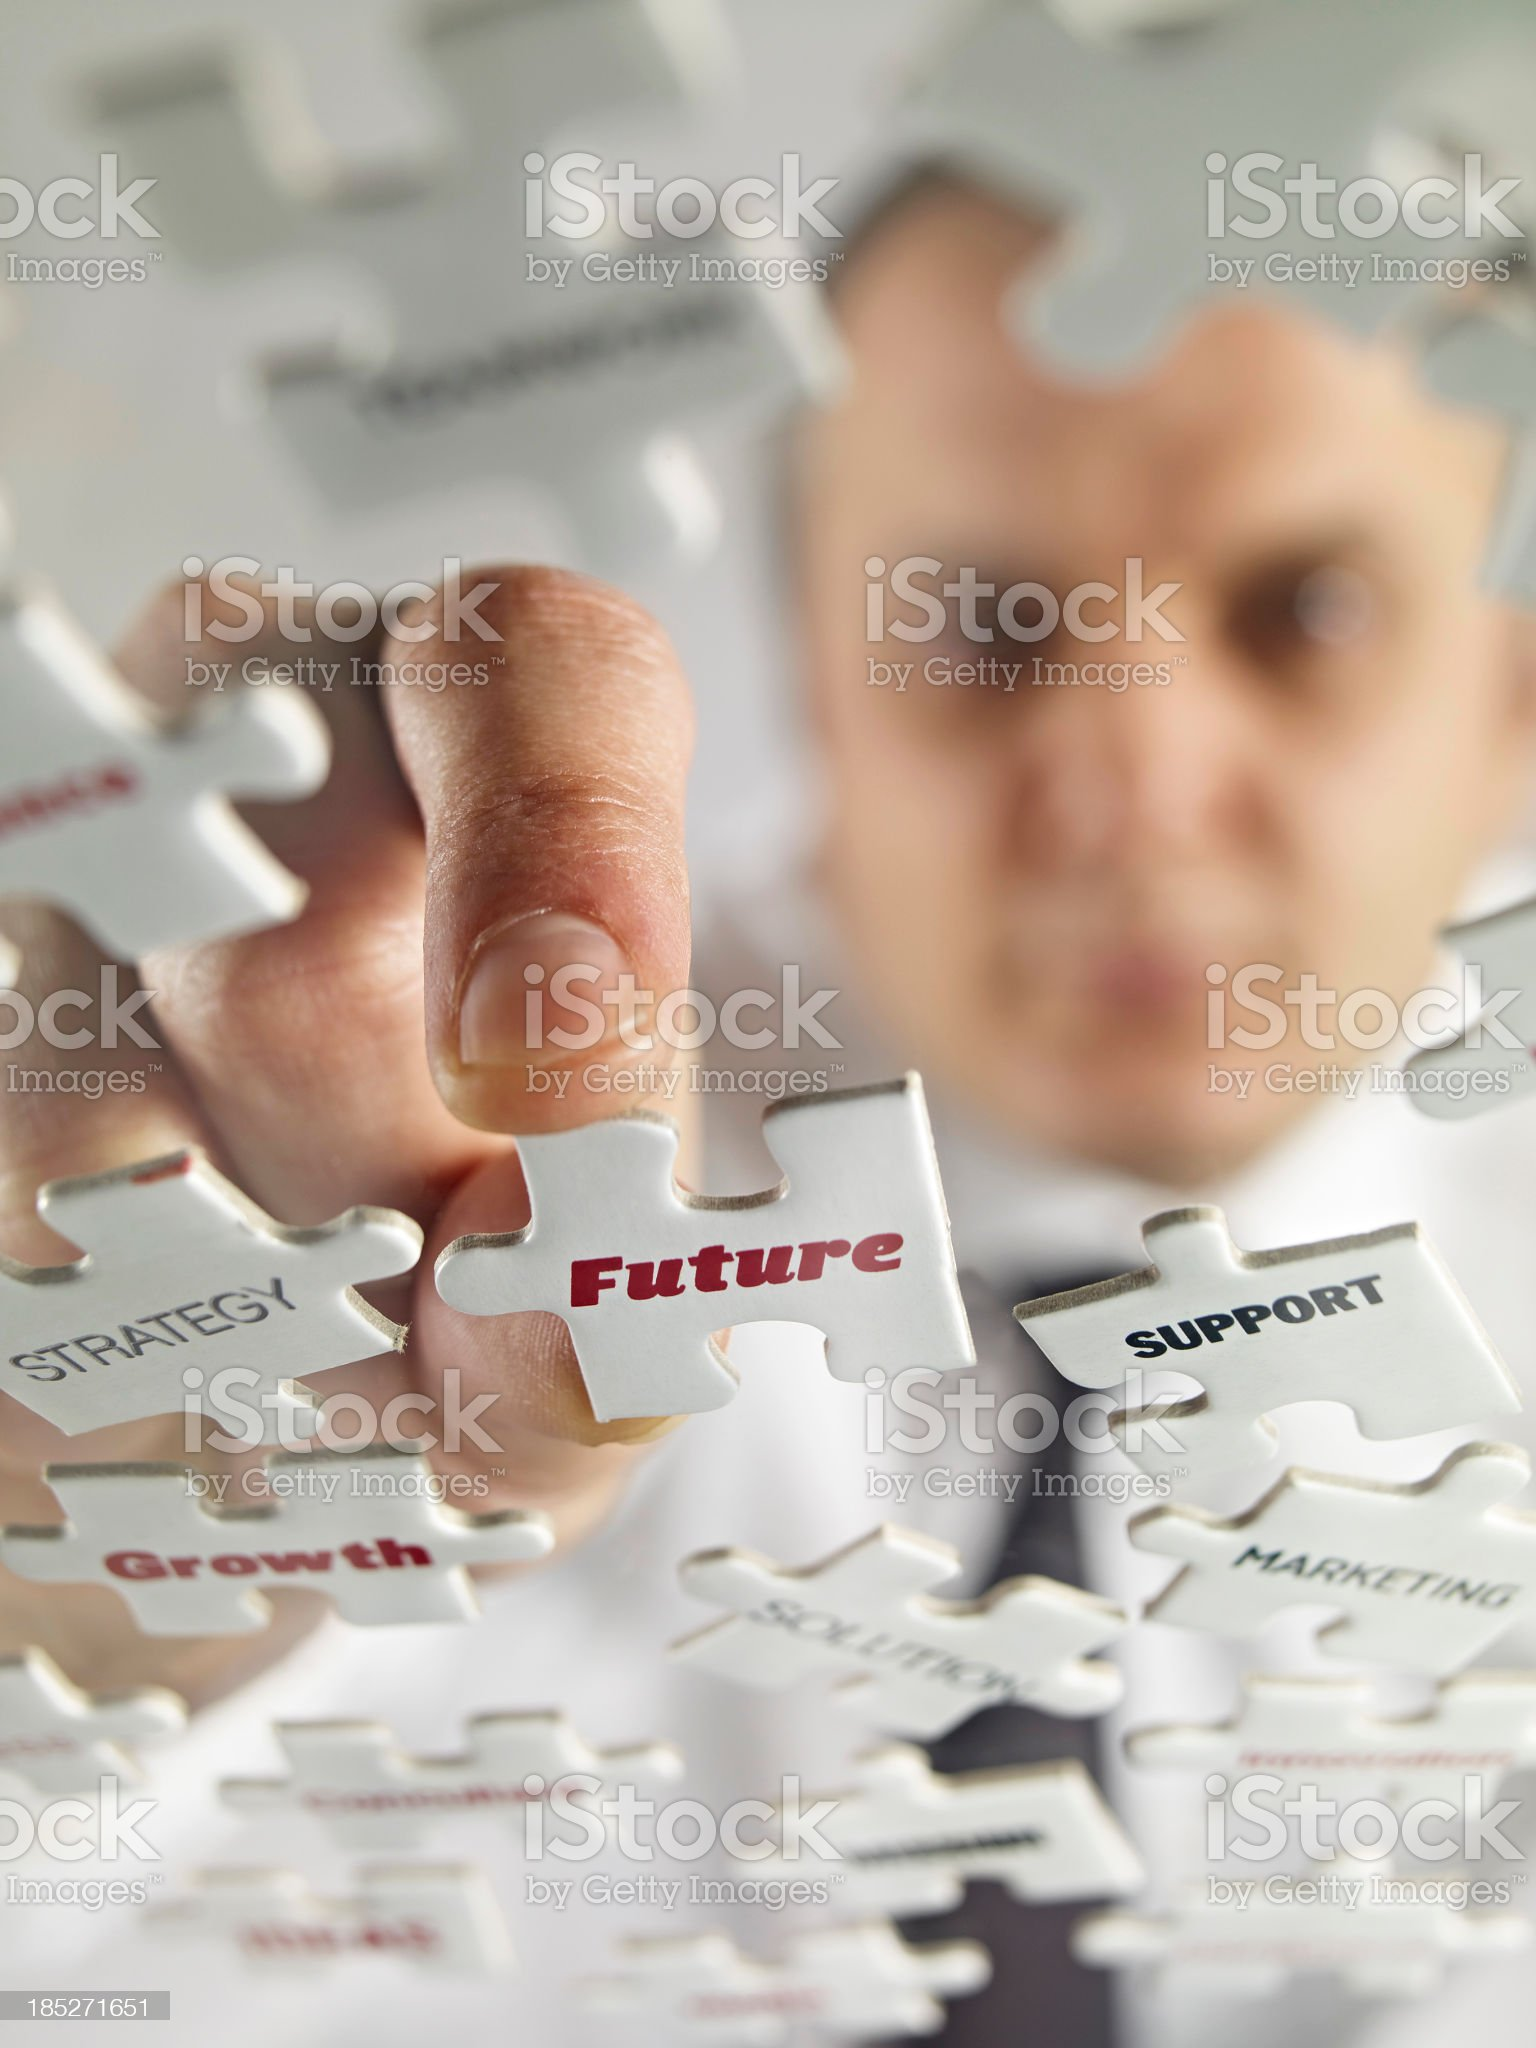 Close shot of puzzle pieces with words future and support  royalty-free stock photo